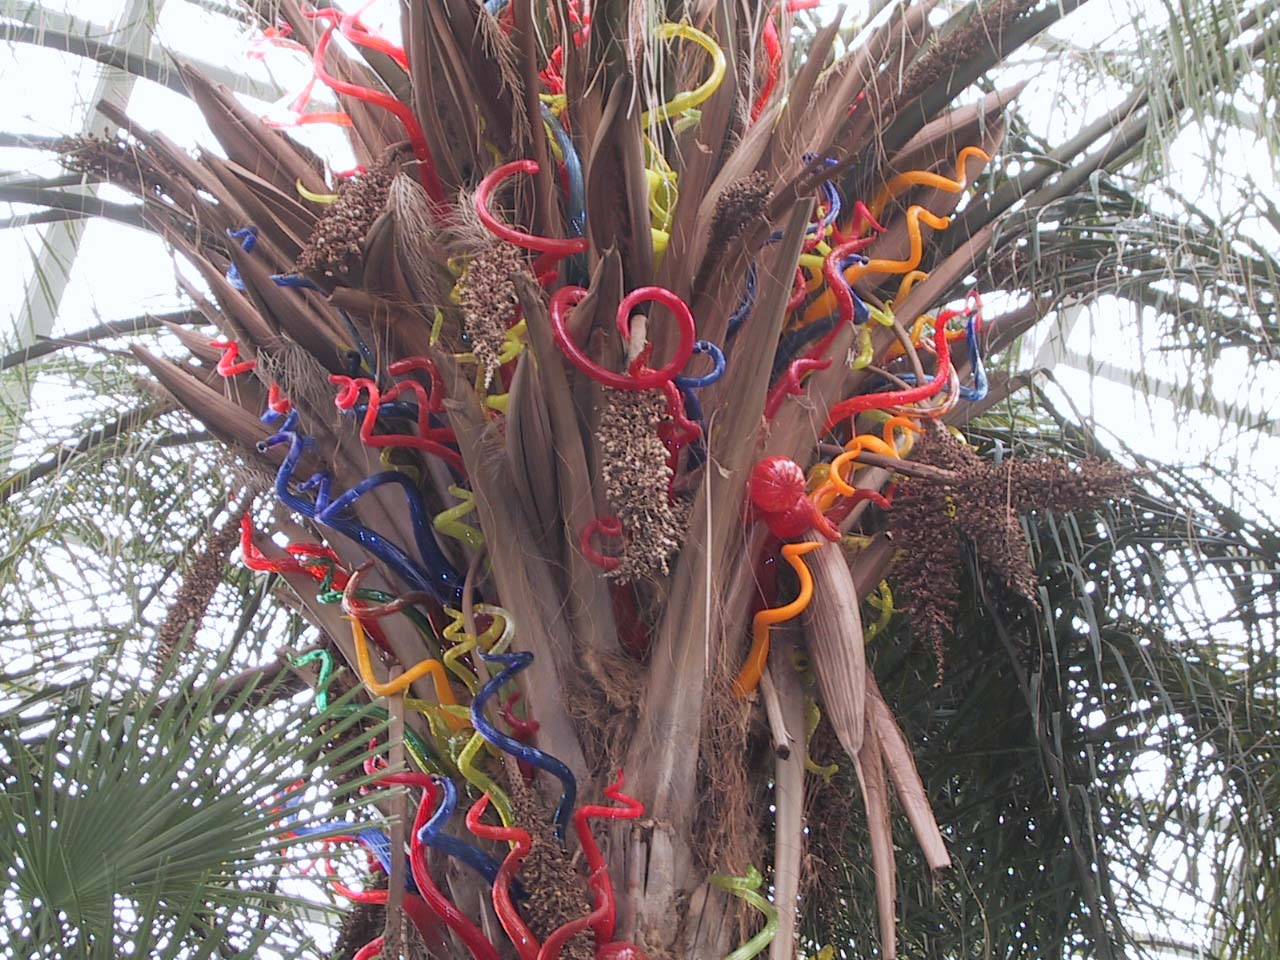 From The Chihuly In The Park A Garden Of Glass At Garfield Park Chicago Pics4learning